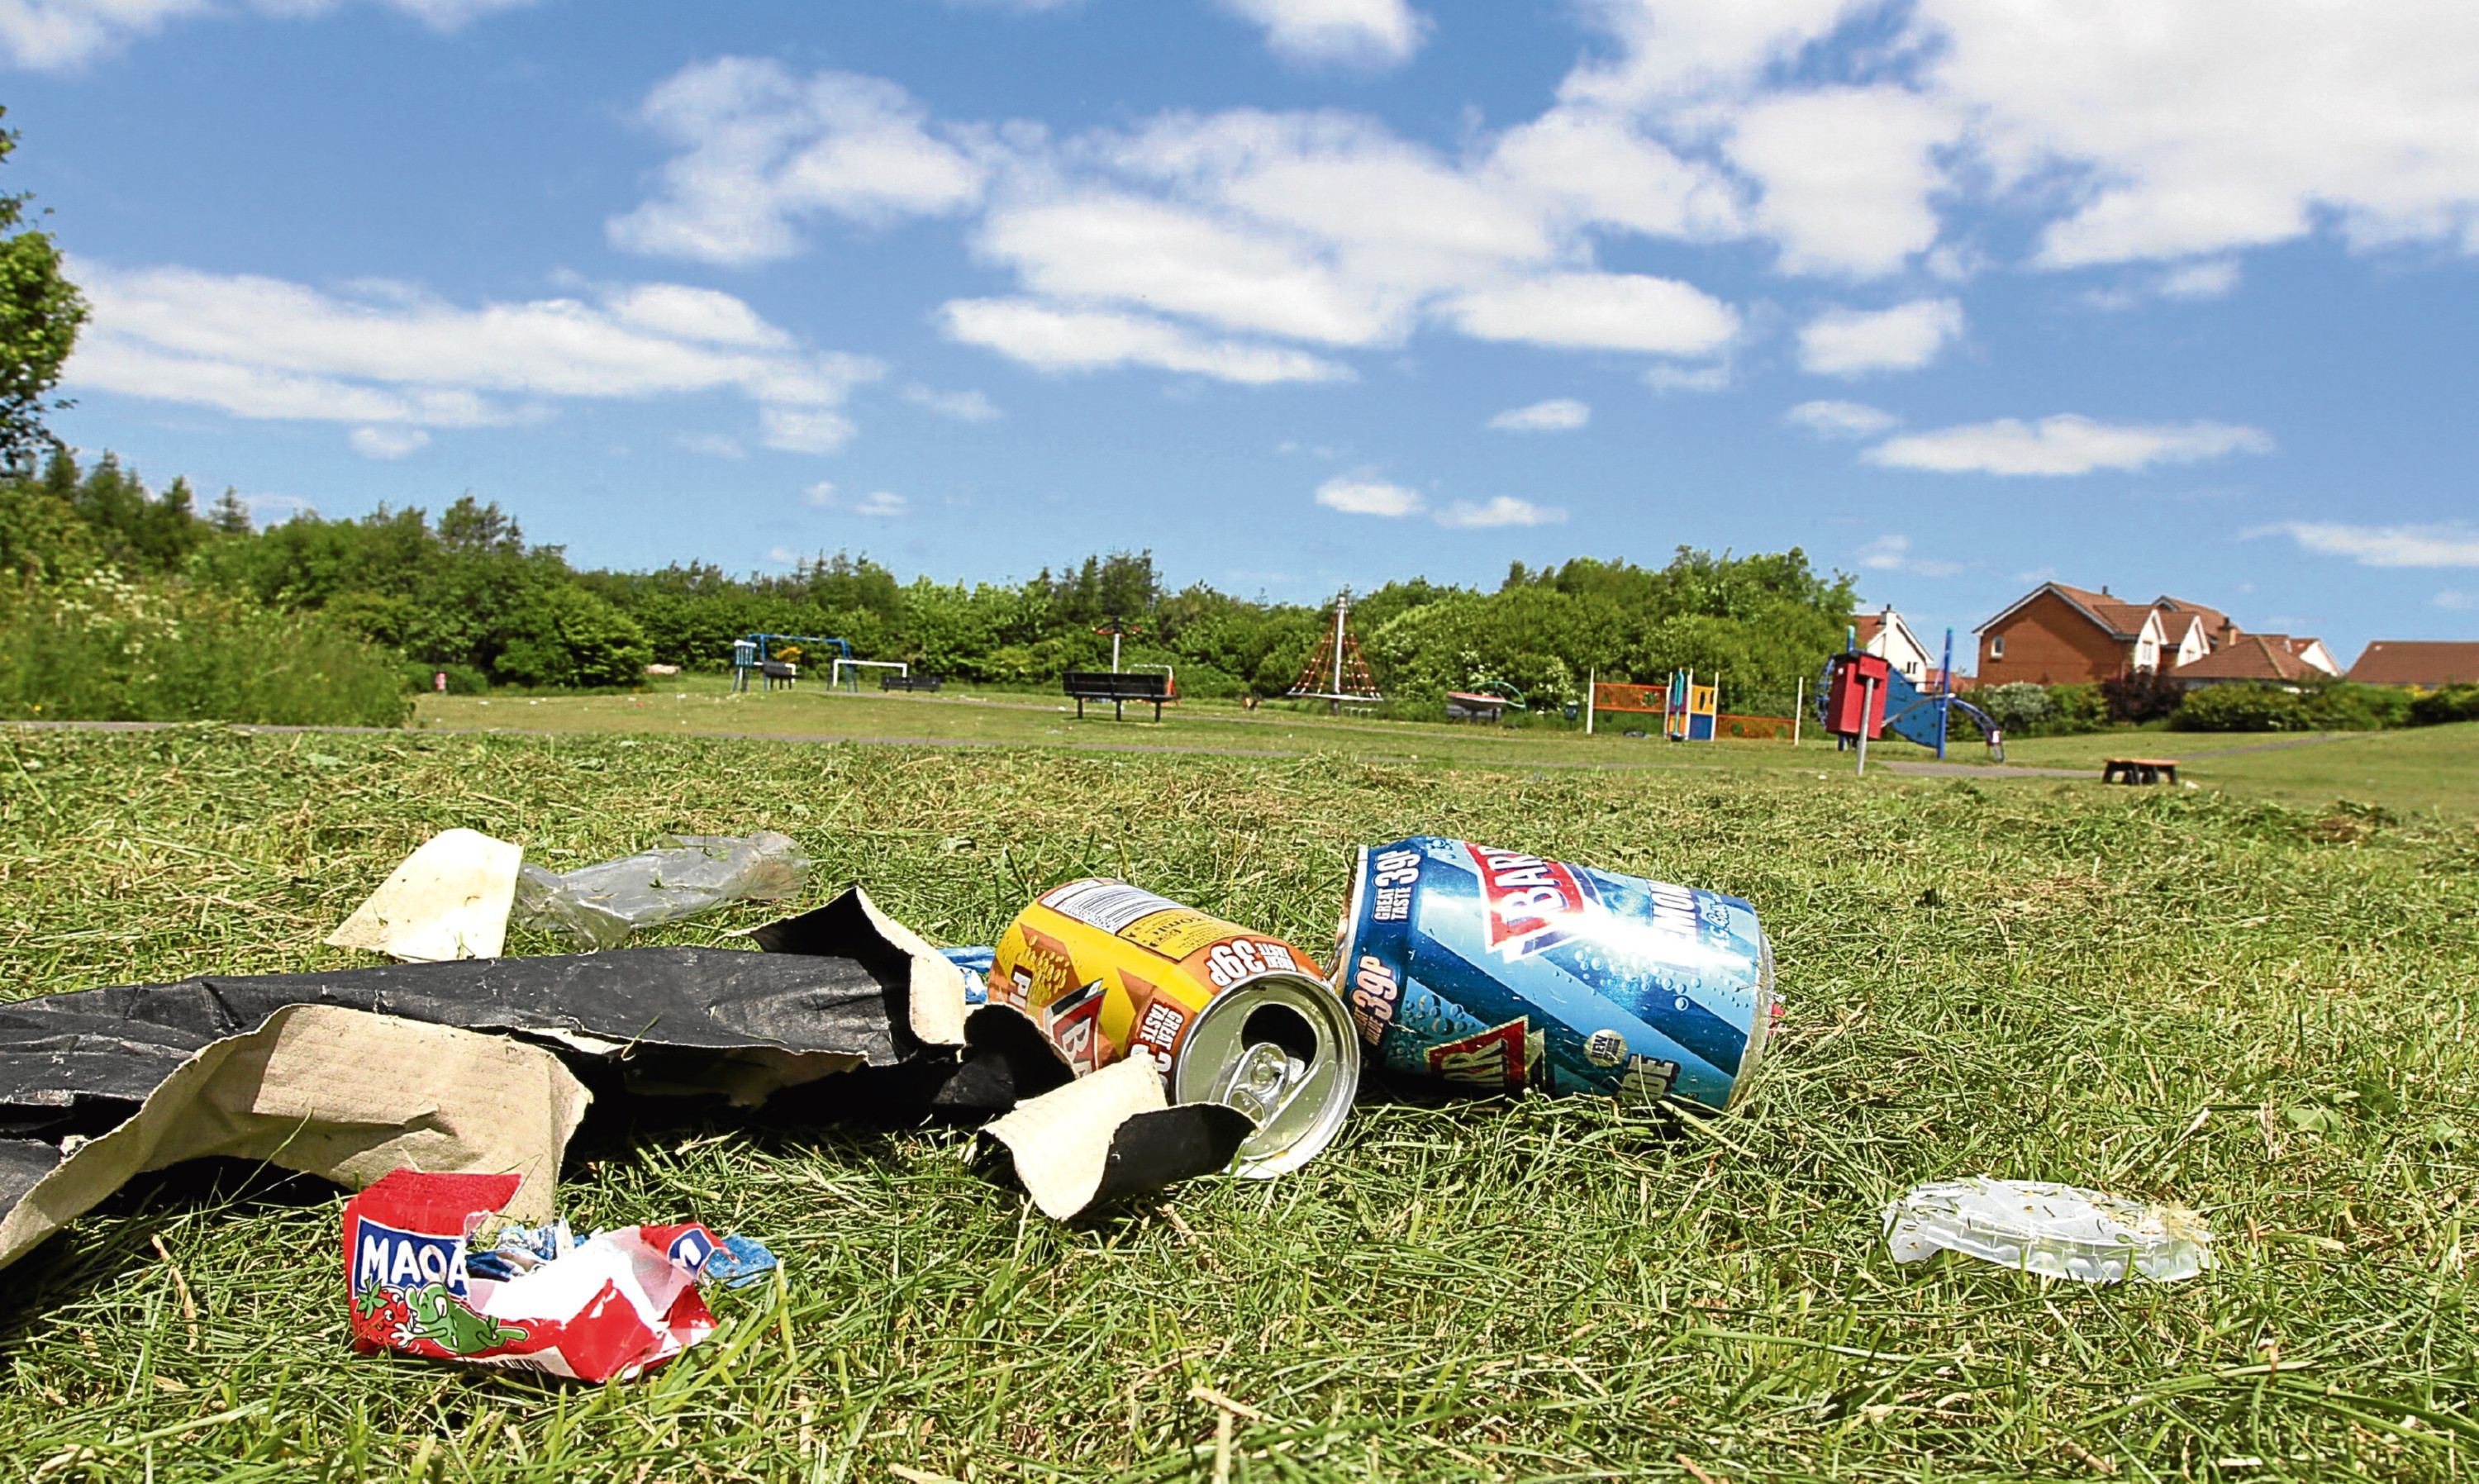 Litterbugs can be the scourge of communities